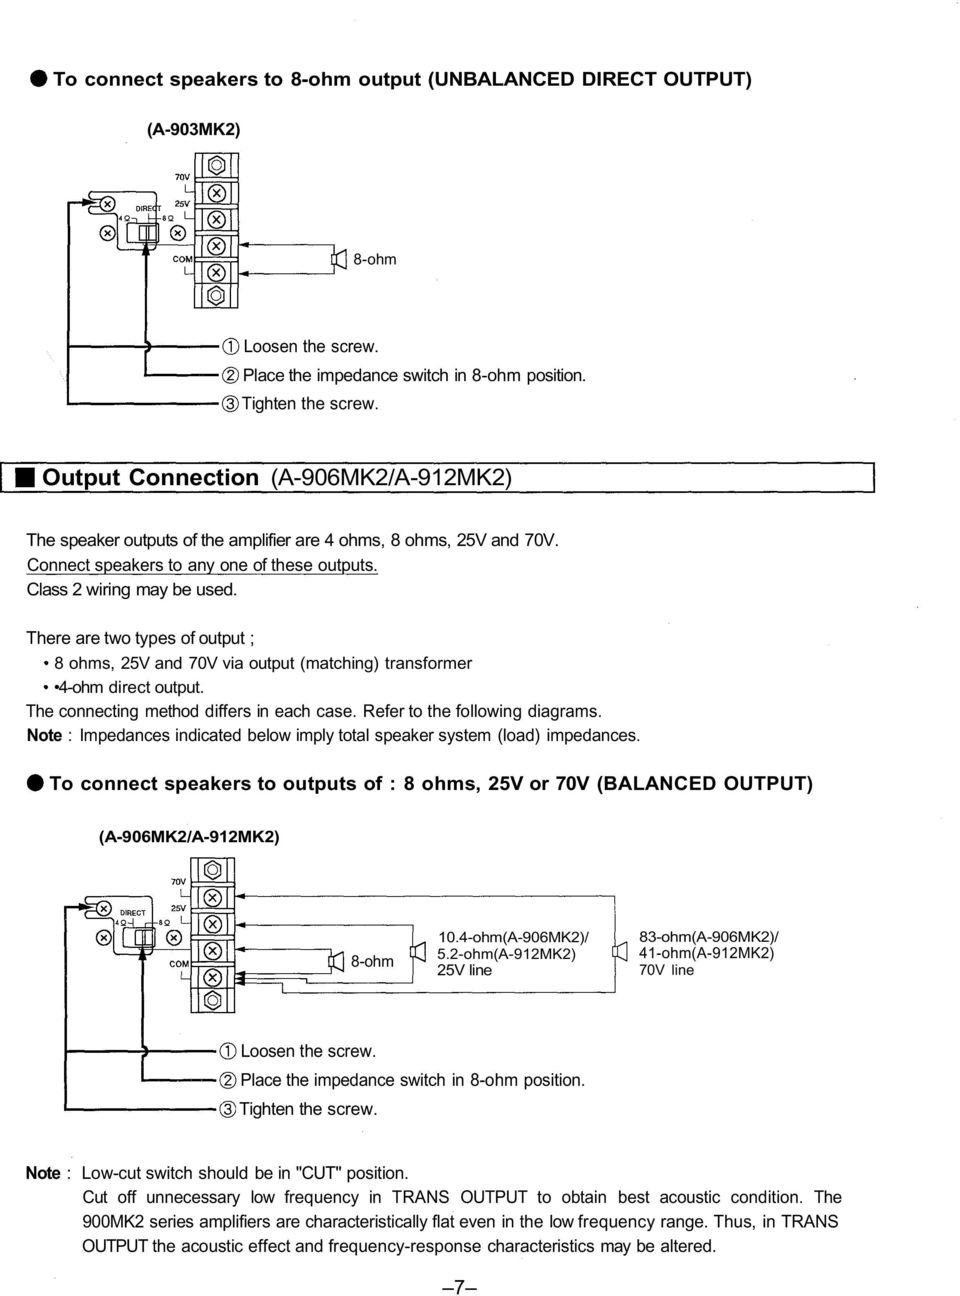 TOA 900 SERIES II MIXER POWER AMPLIFIER - PDF Free Download  Ohm Sub Wiring Diagram Output Amp on 4 ohm subs wiring parallel or series, 4 ohm dual voice coil wiring, dual 4 ohm wiring-diagram, 4 ohm to 2 ohm diagram, 4 ohm subwoofers, 4 ohm to 4 ohm, 2 ohm wiring-diagram, 4 ohm sub to 2 ohm amp, 4 ohm to 1 ohm, car sub wiring-diagram, 4 ohm dvc wiring options, 4 ohm speaker wiring, 4 ohm single voice coil wiring, 4 ohm dvc to 2 ohm, 1 ohm wiring-diagram,